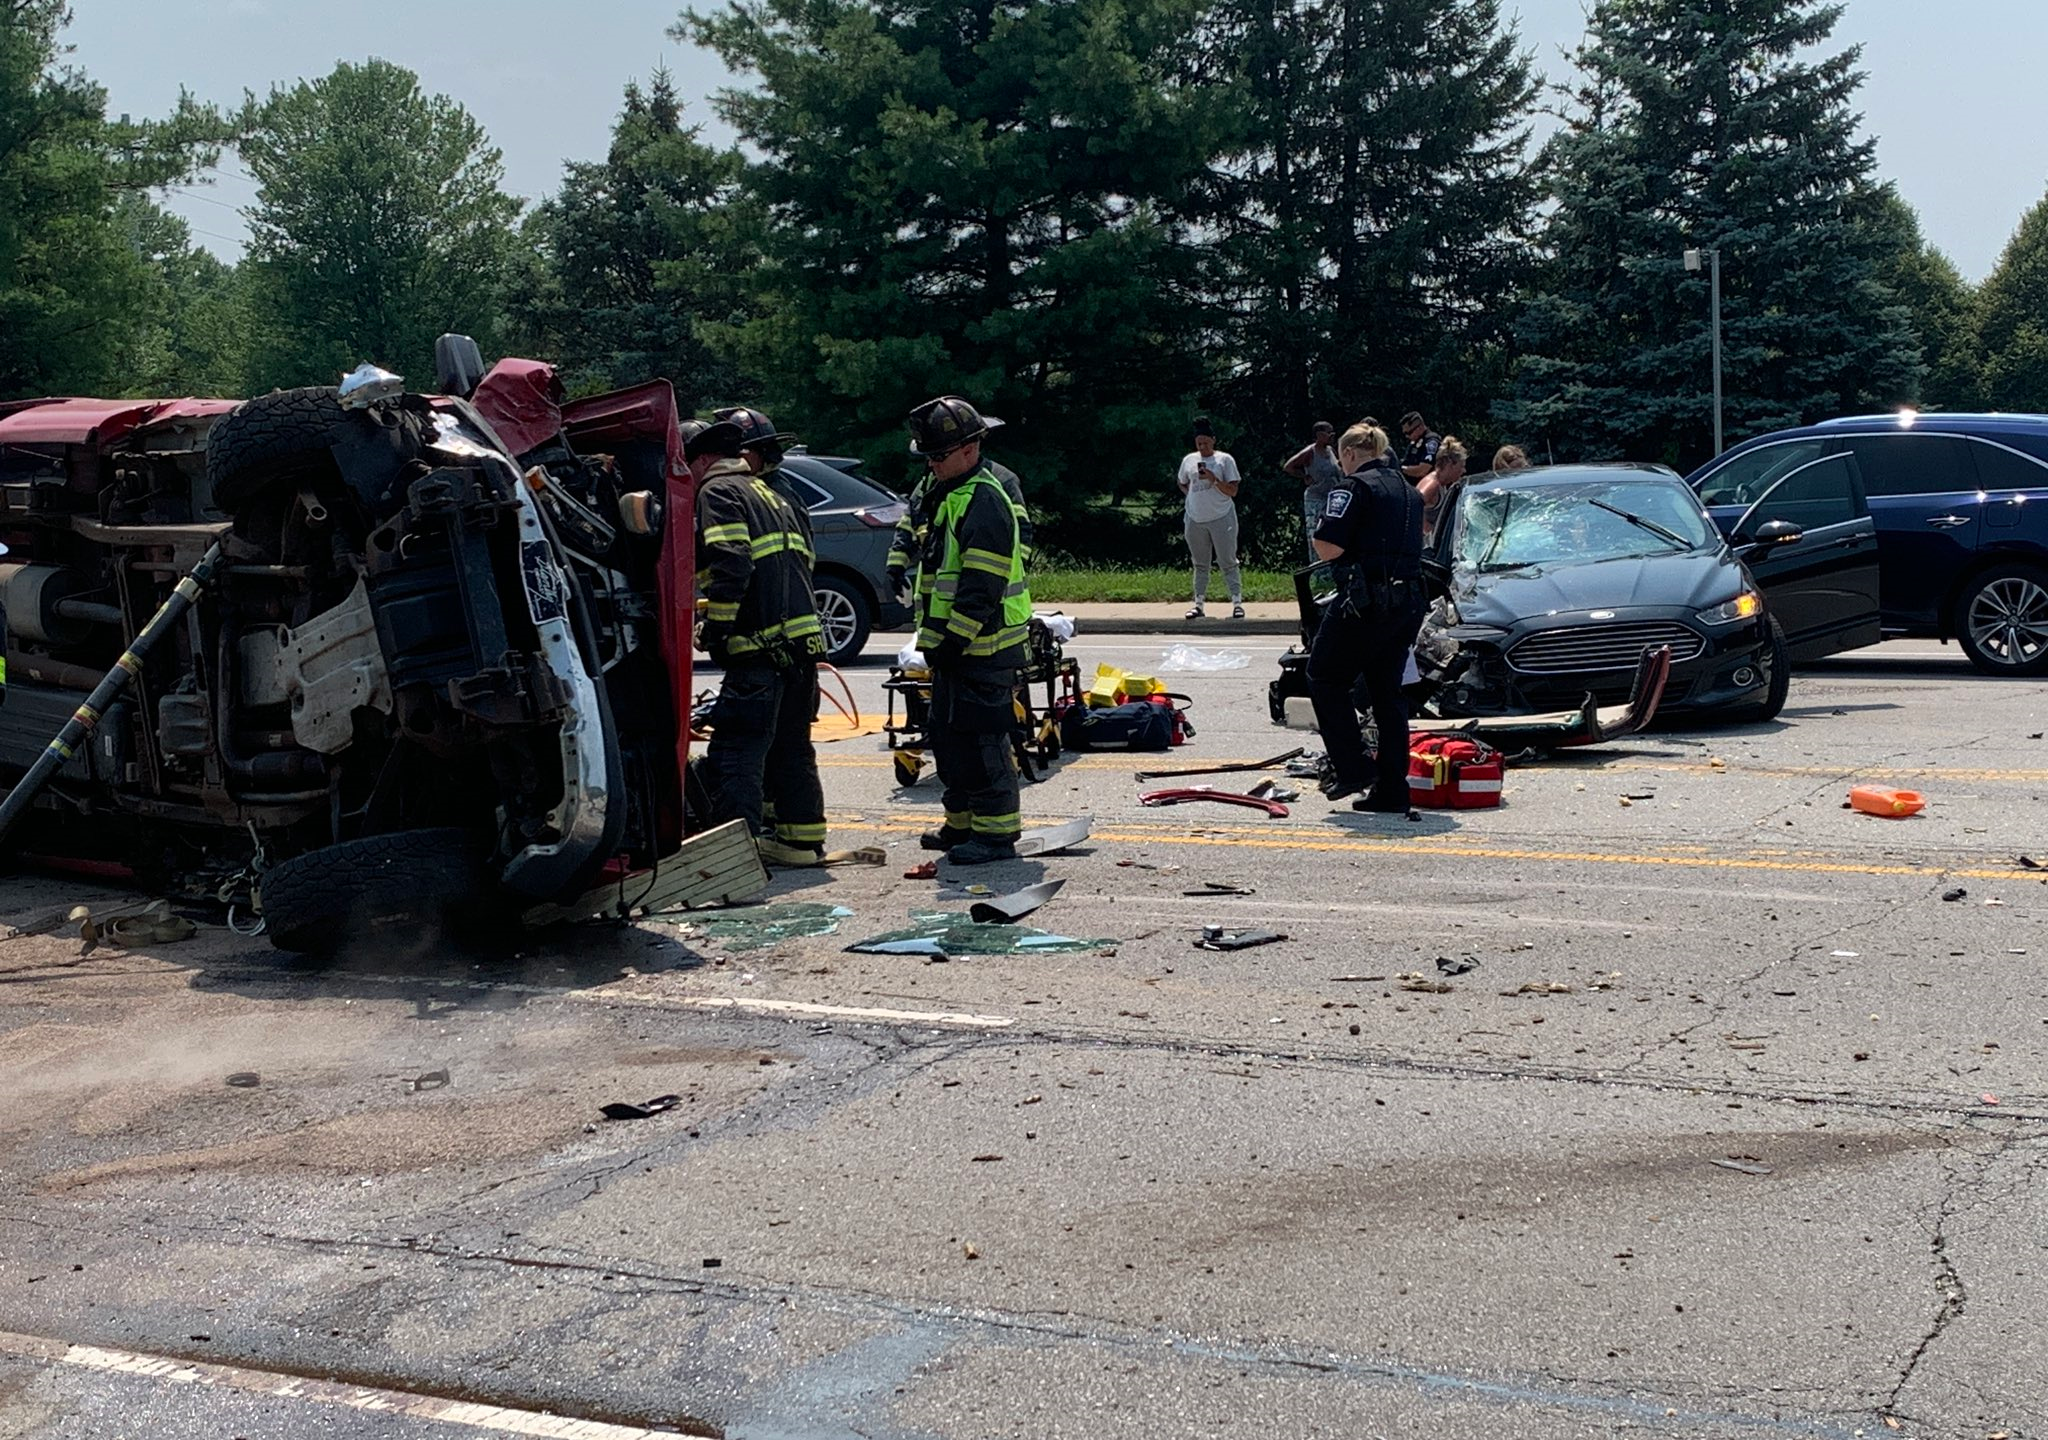 3 injured in 2-vehicle crash in Fishers